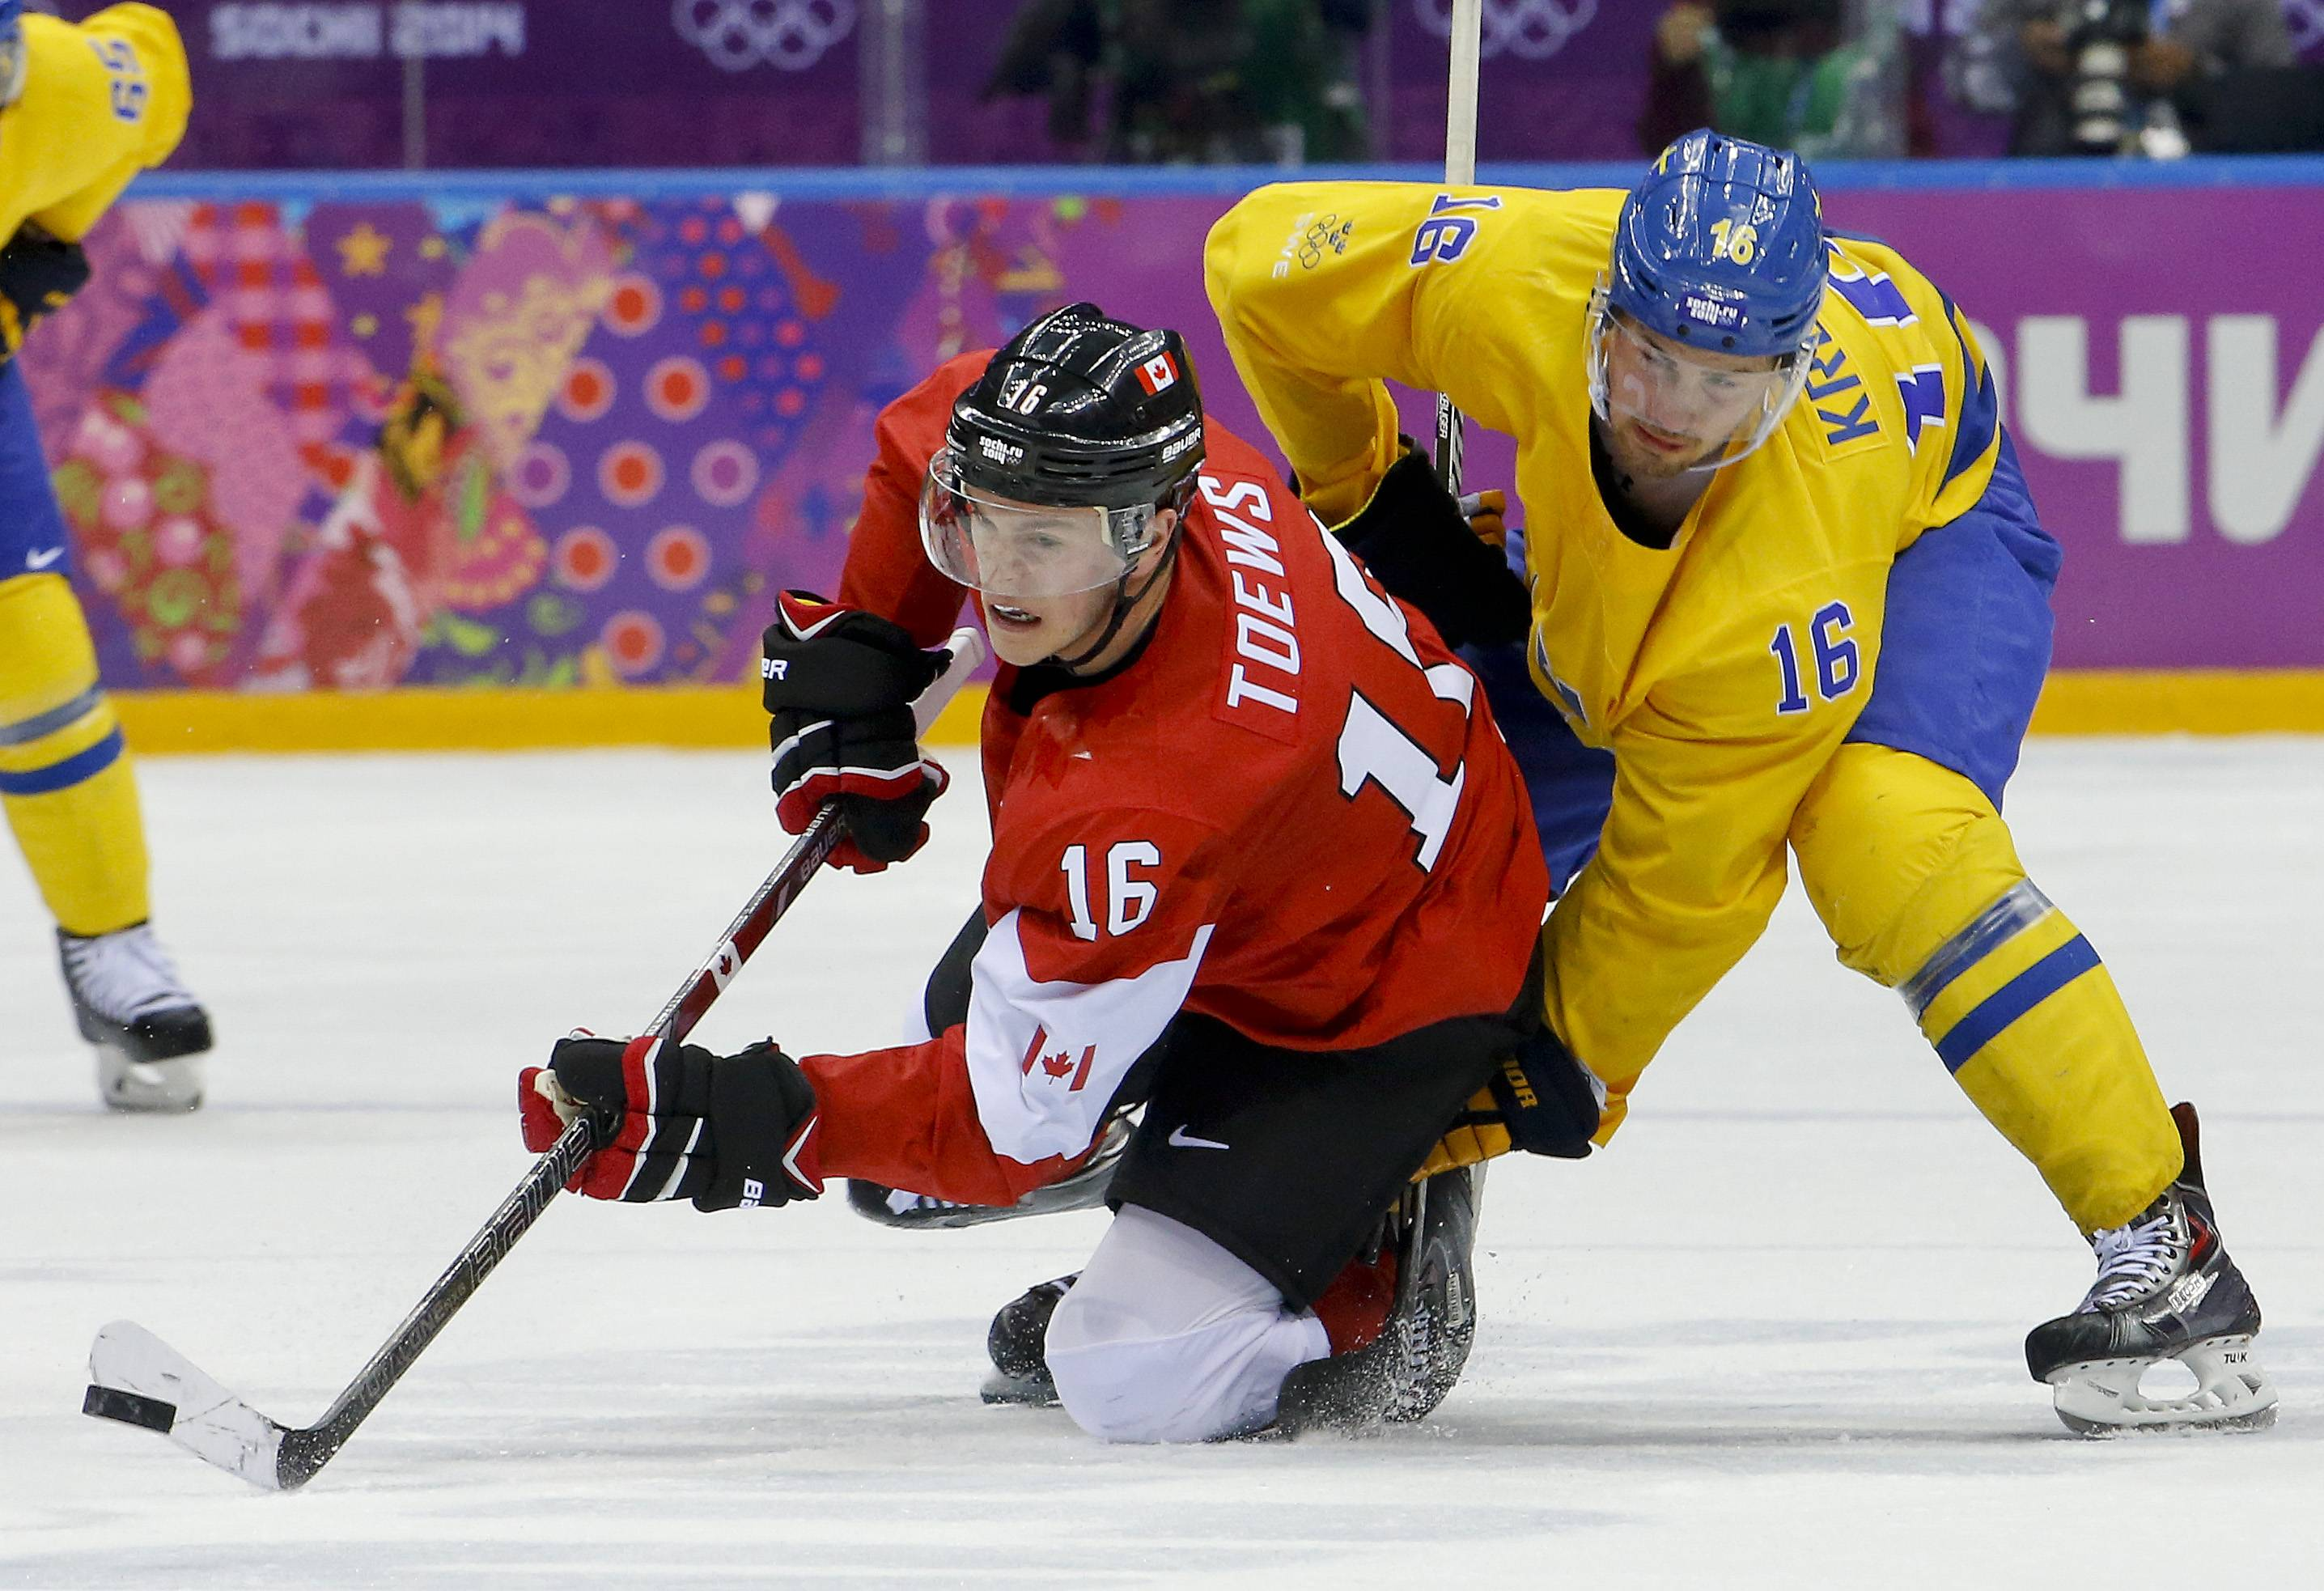 Blackhawks teammates Jonathan Toews (Canada) and Marcus Kruger (Sweden) face each other during the gold-medal game on the final day of the Sochi Olympics.